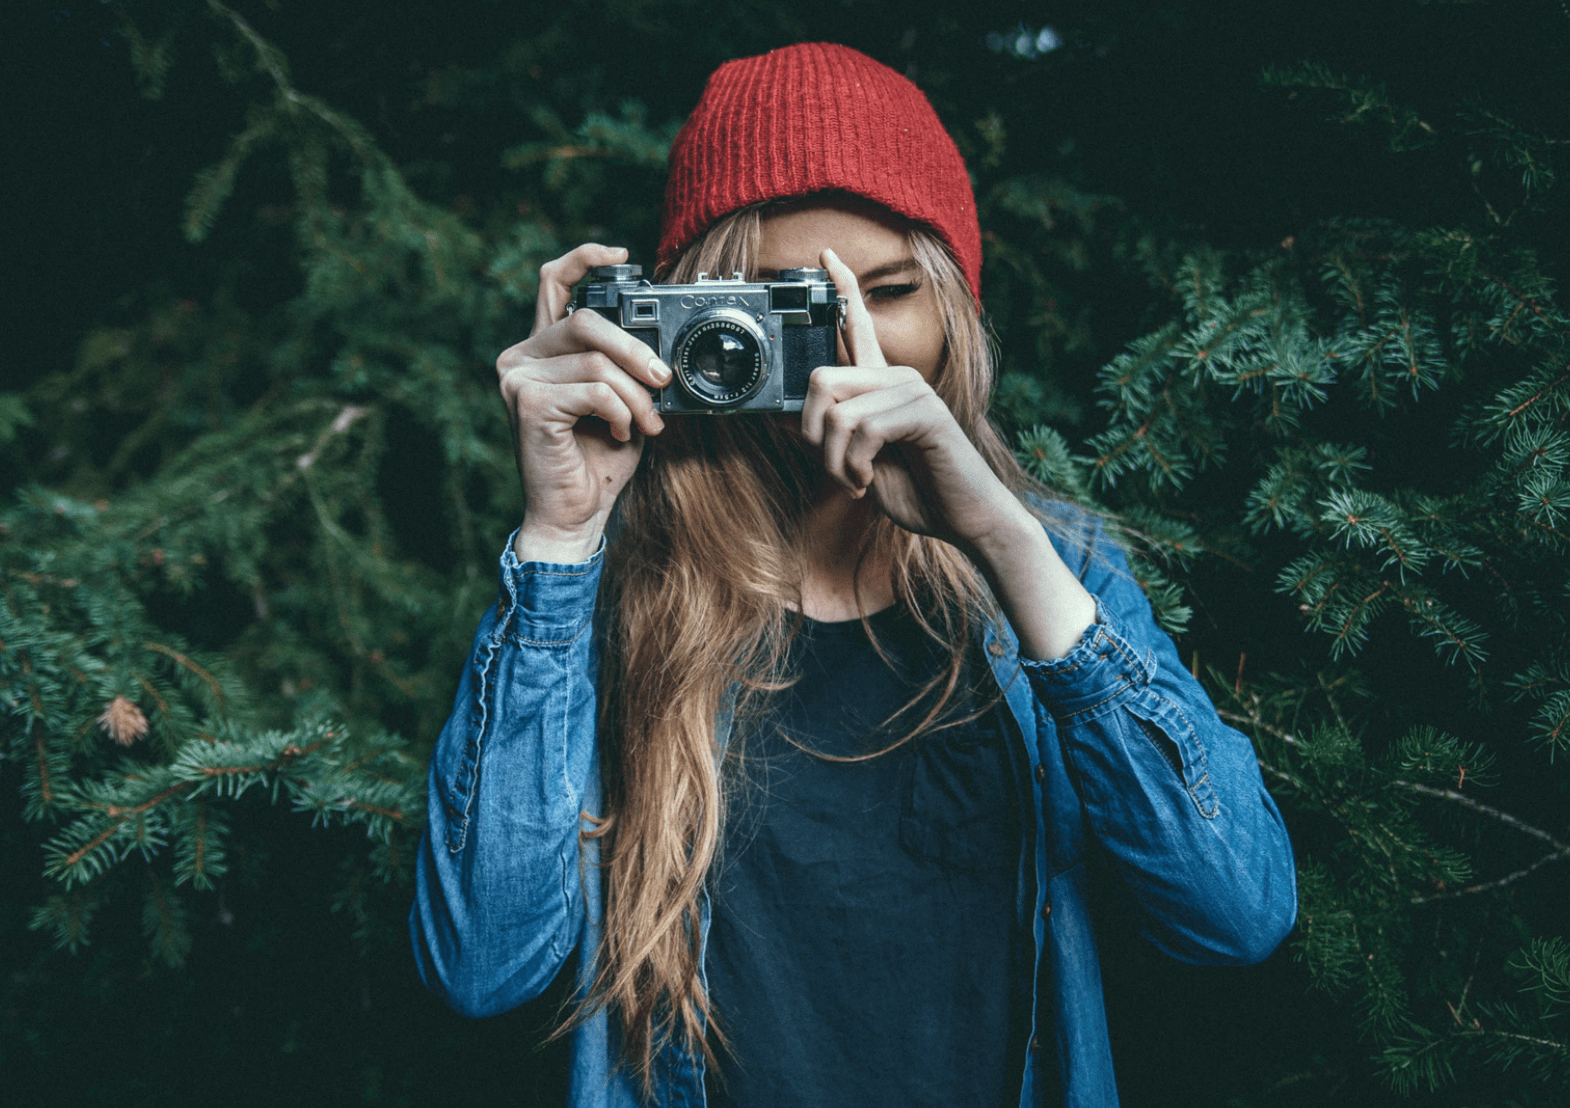 photography education, photography class near me, digital photography basics